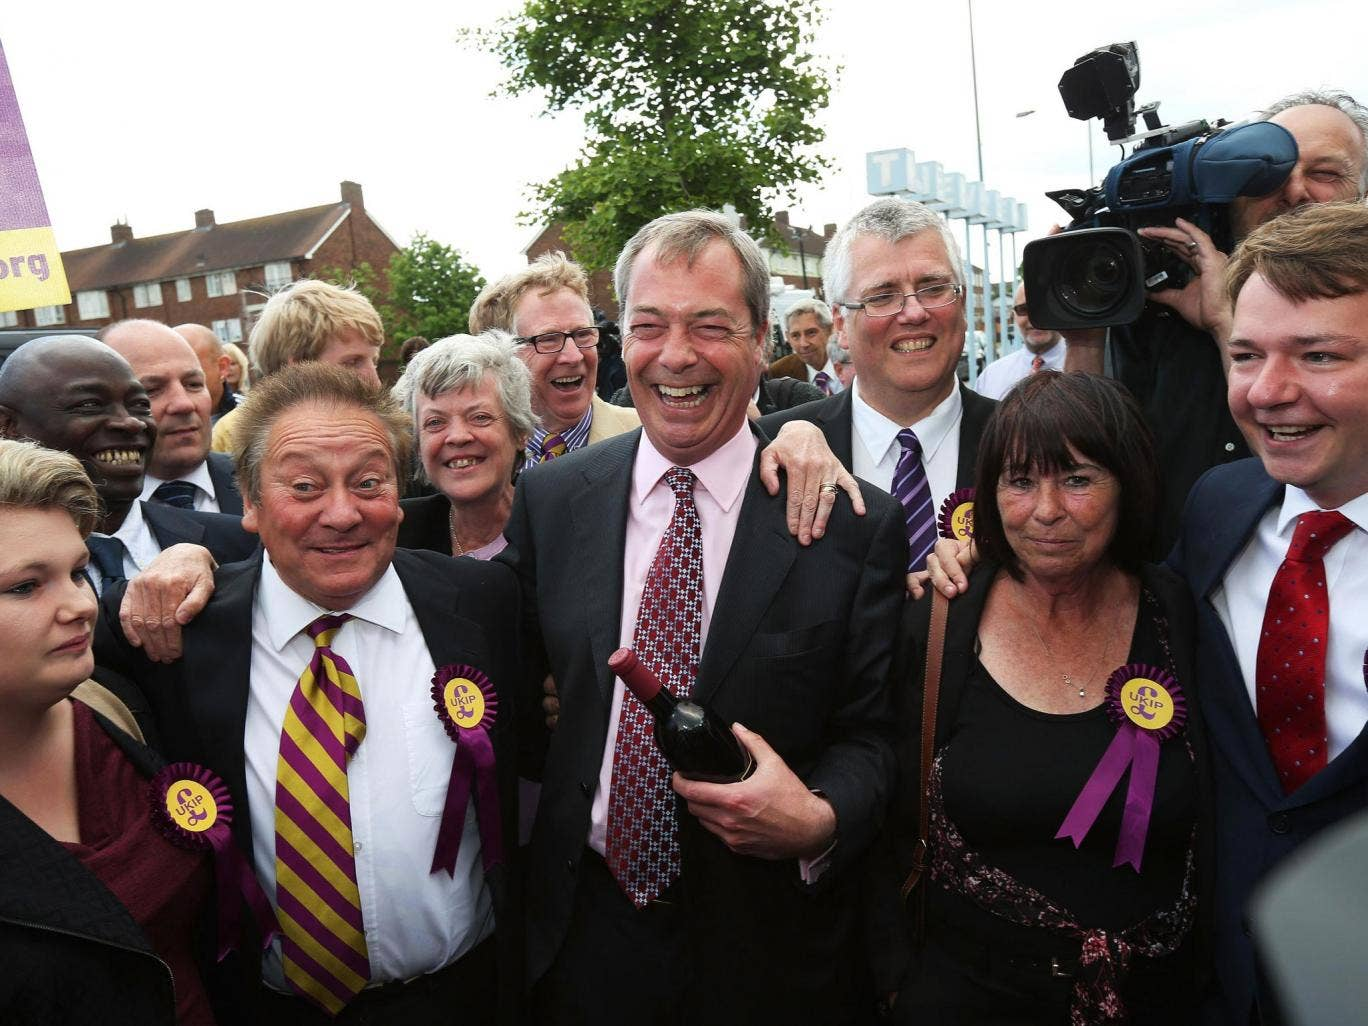 Nigel Farage celebrates with local councillors in South Ockenden